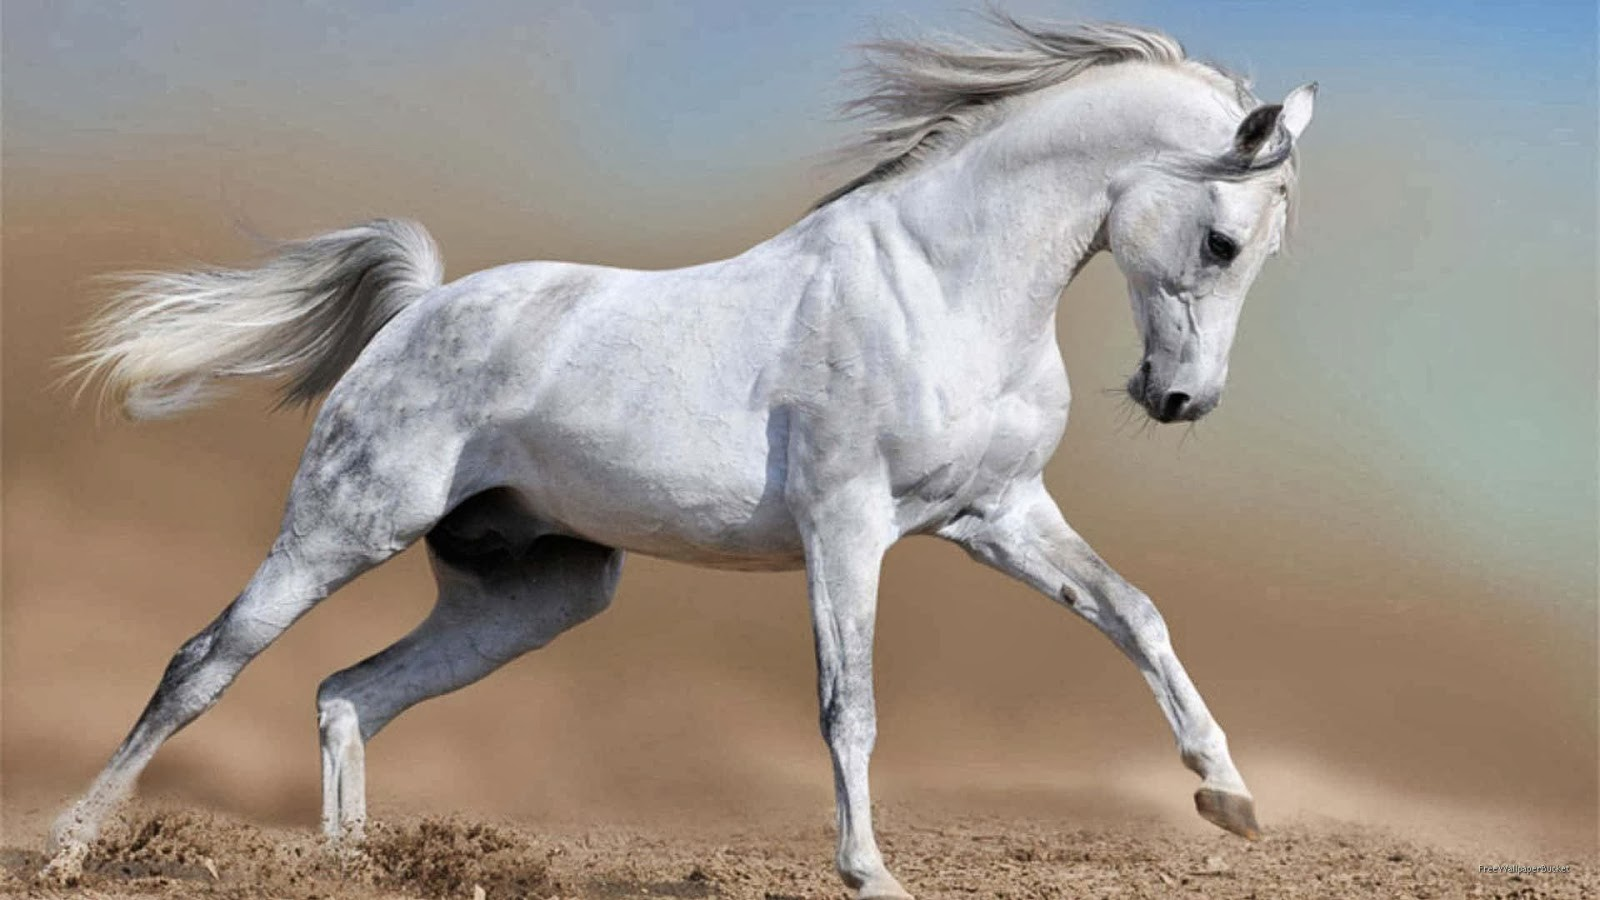 White running horses - photo#50